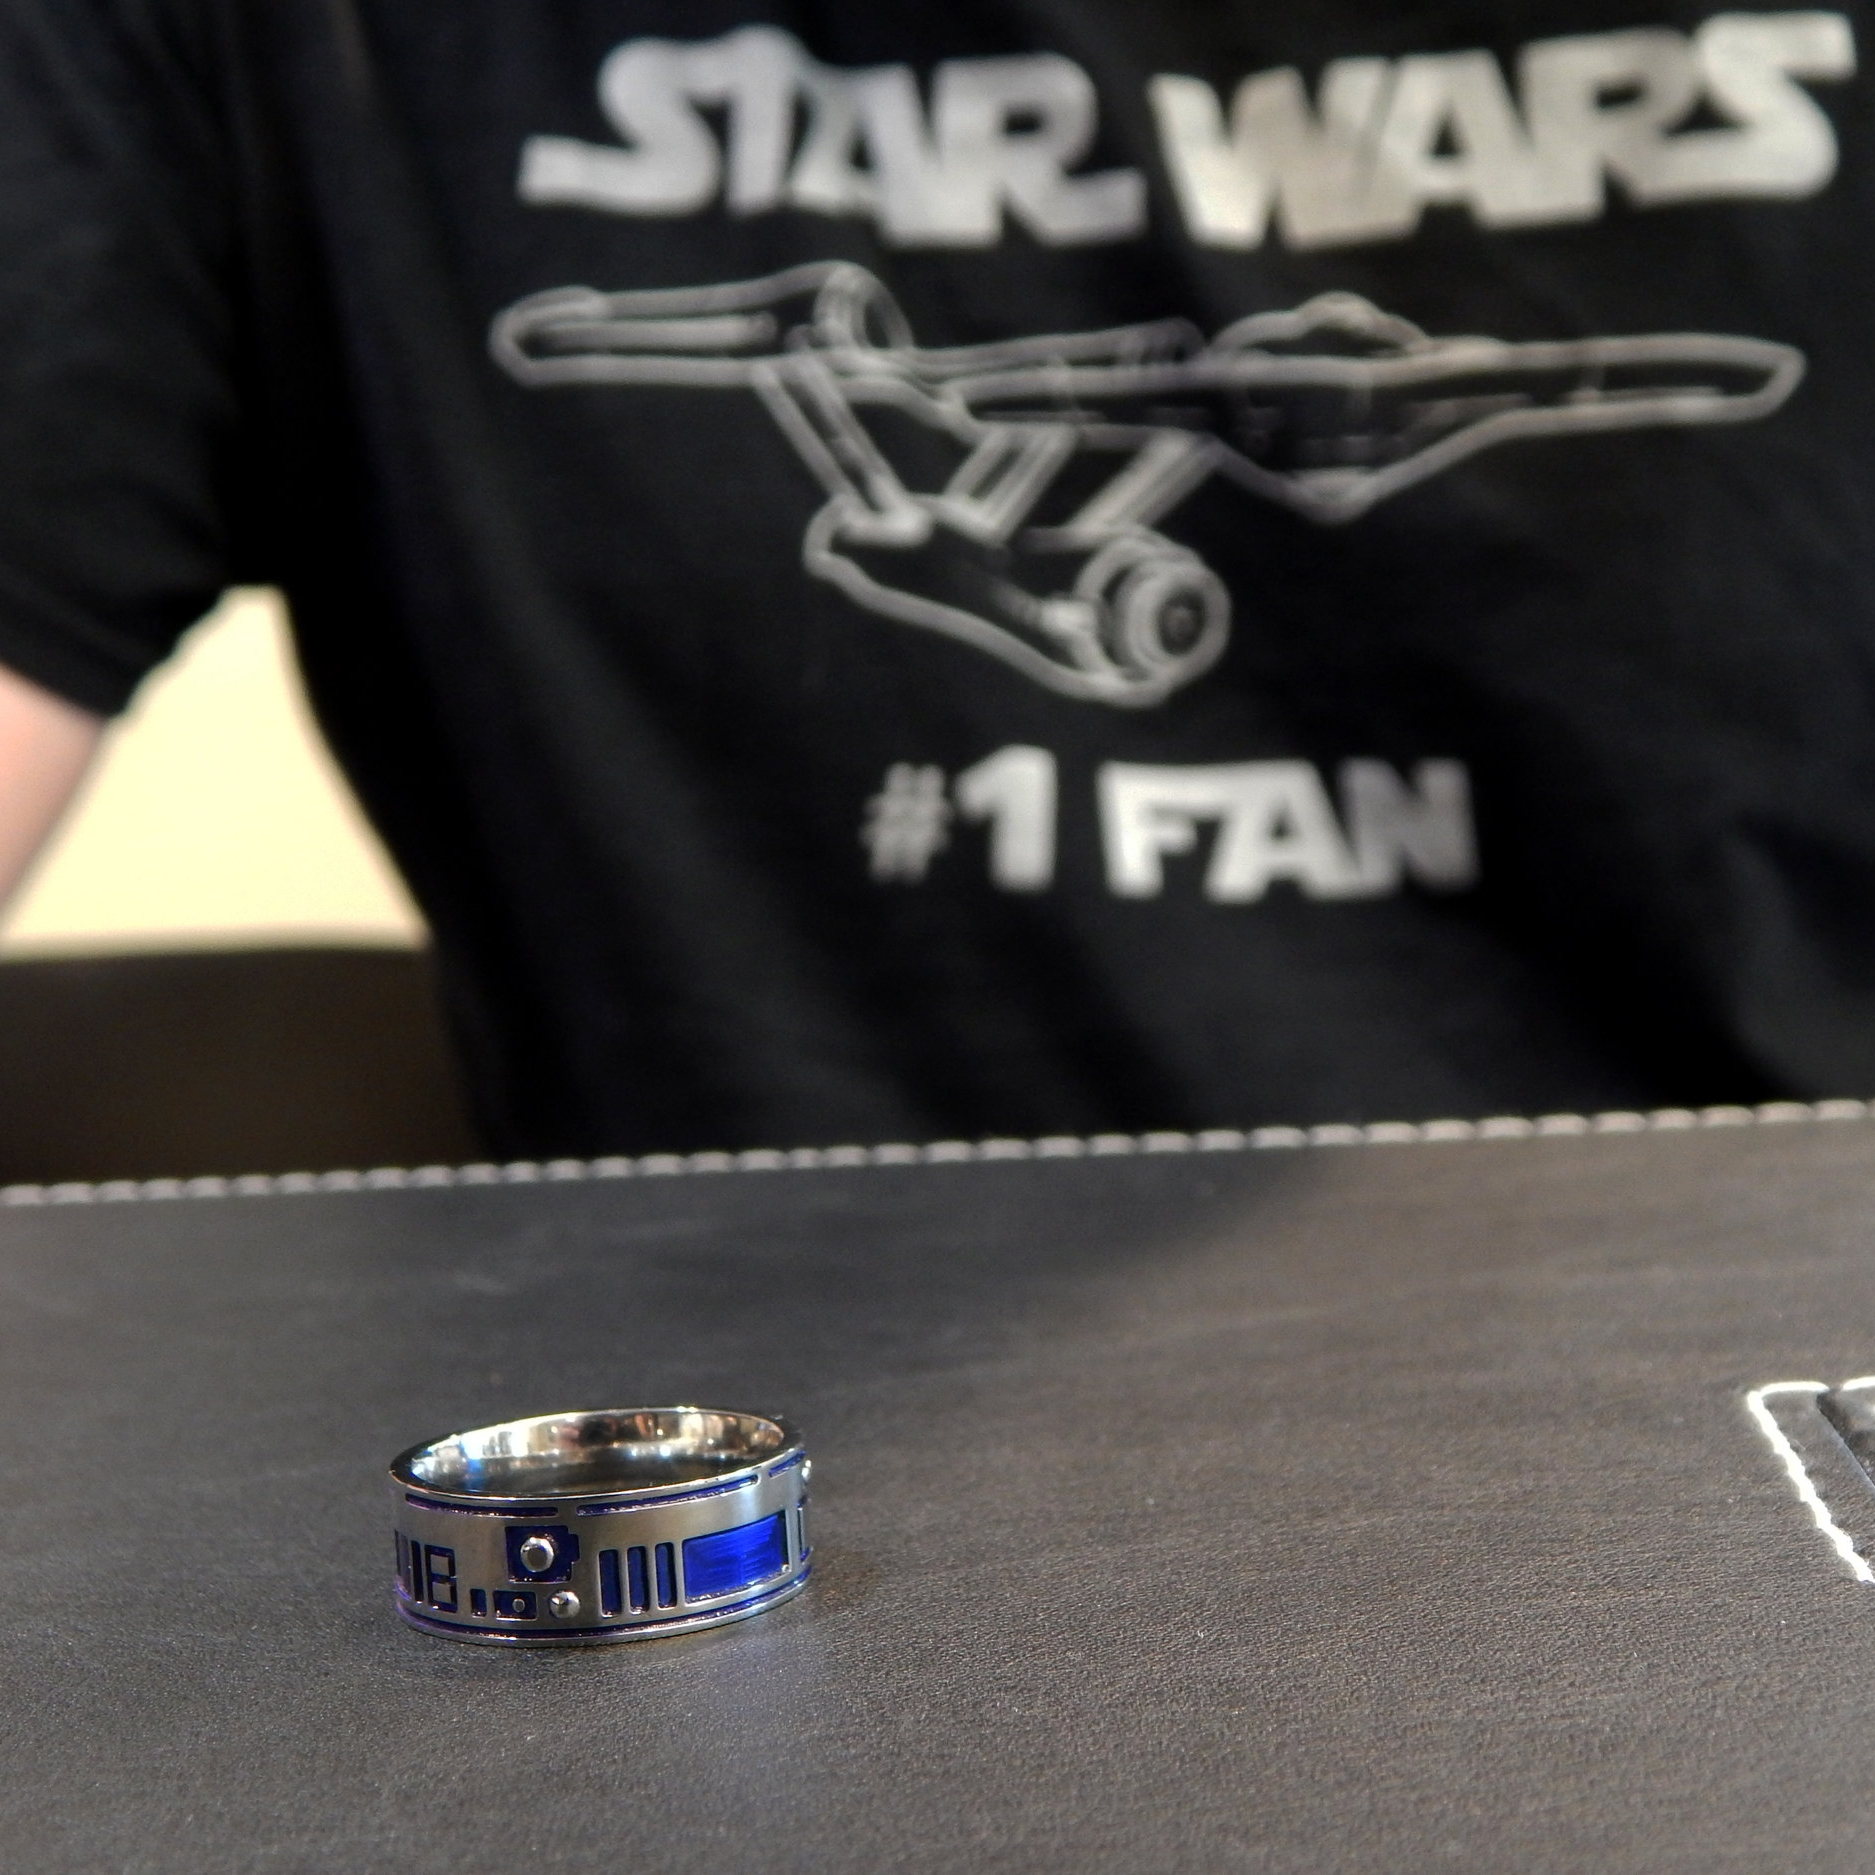 darvier-star-wars-number-one-fan-r2d2-ring.JPG